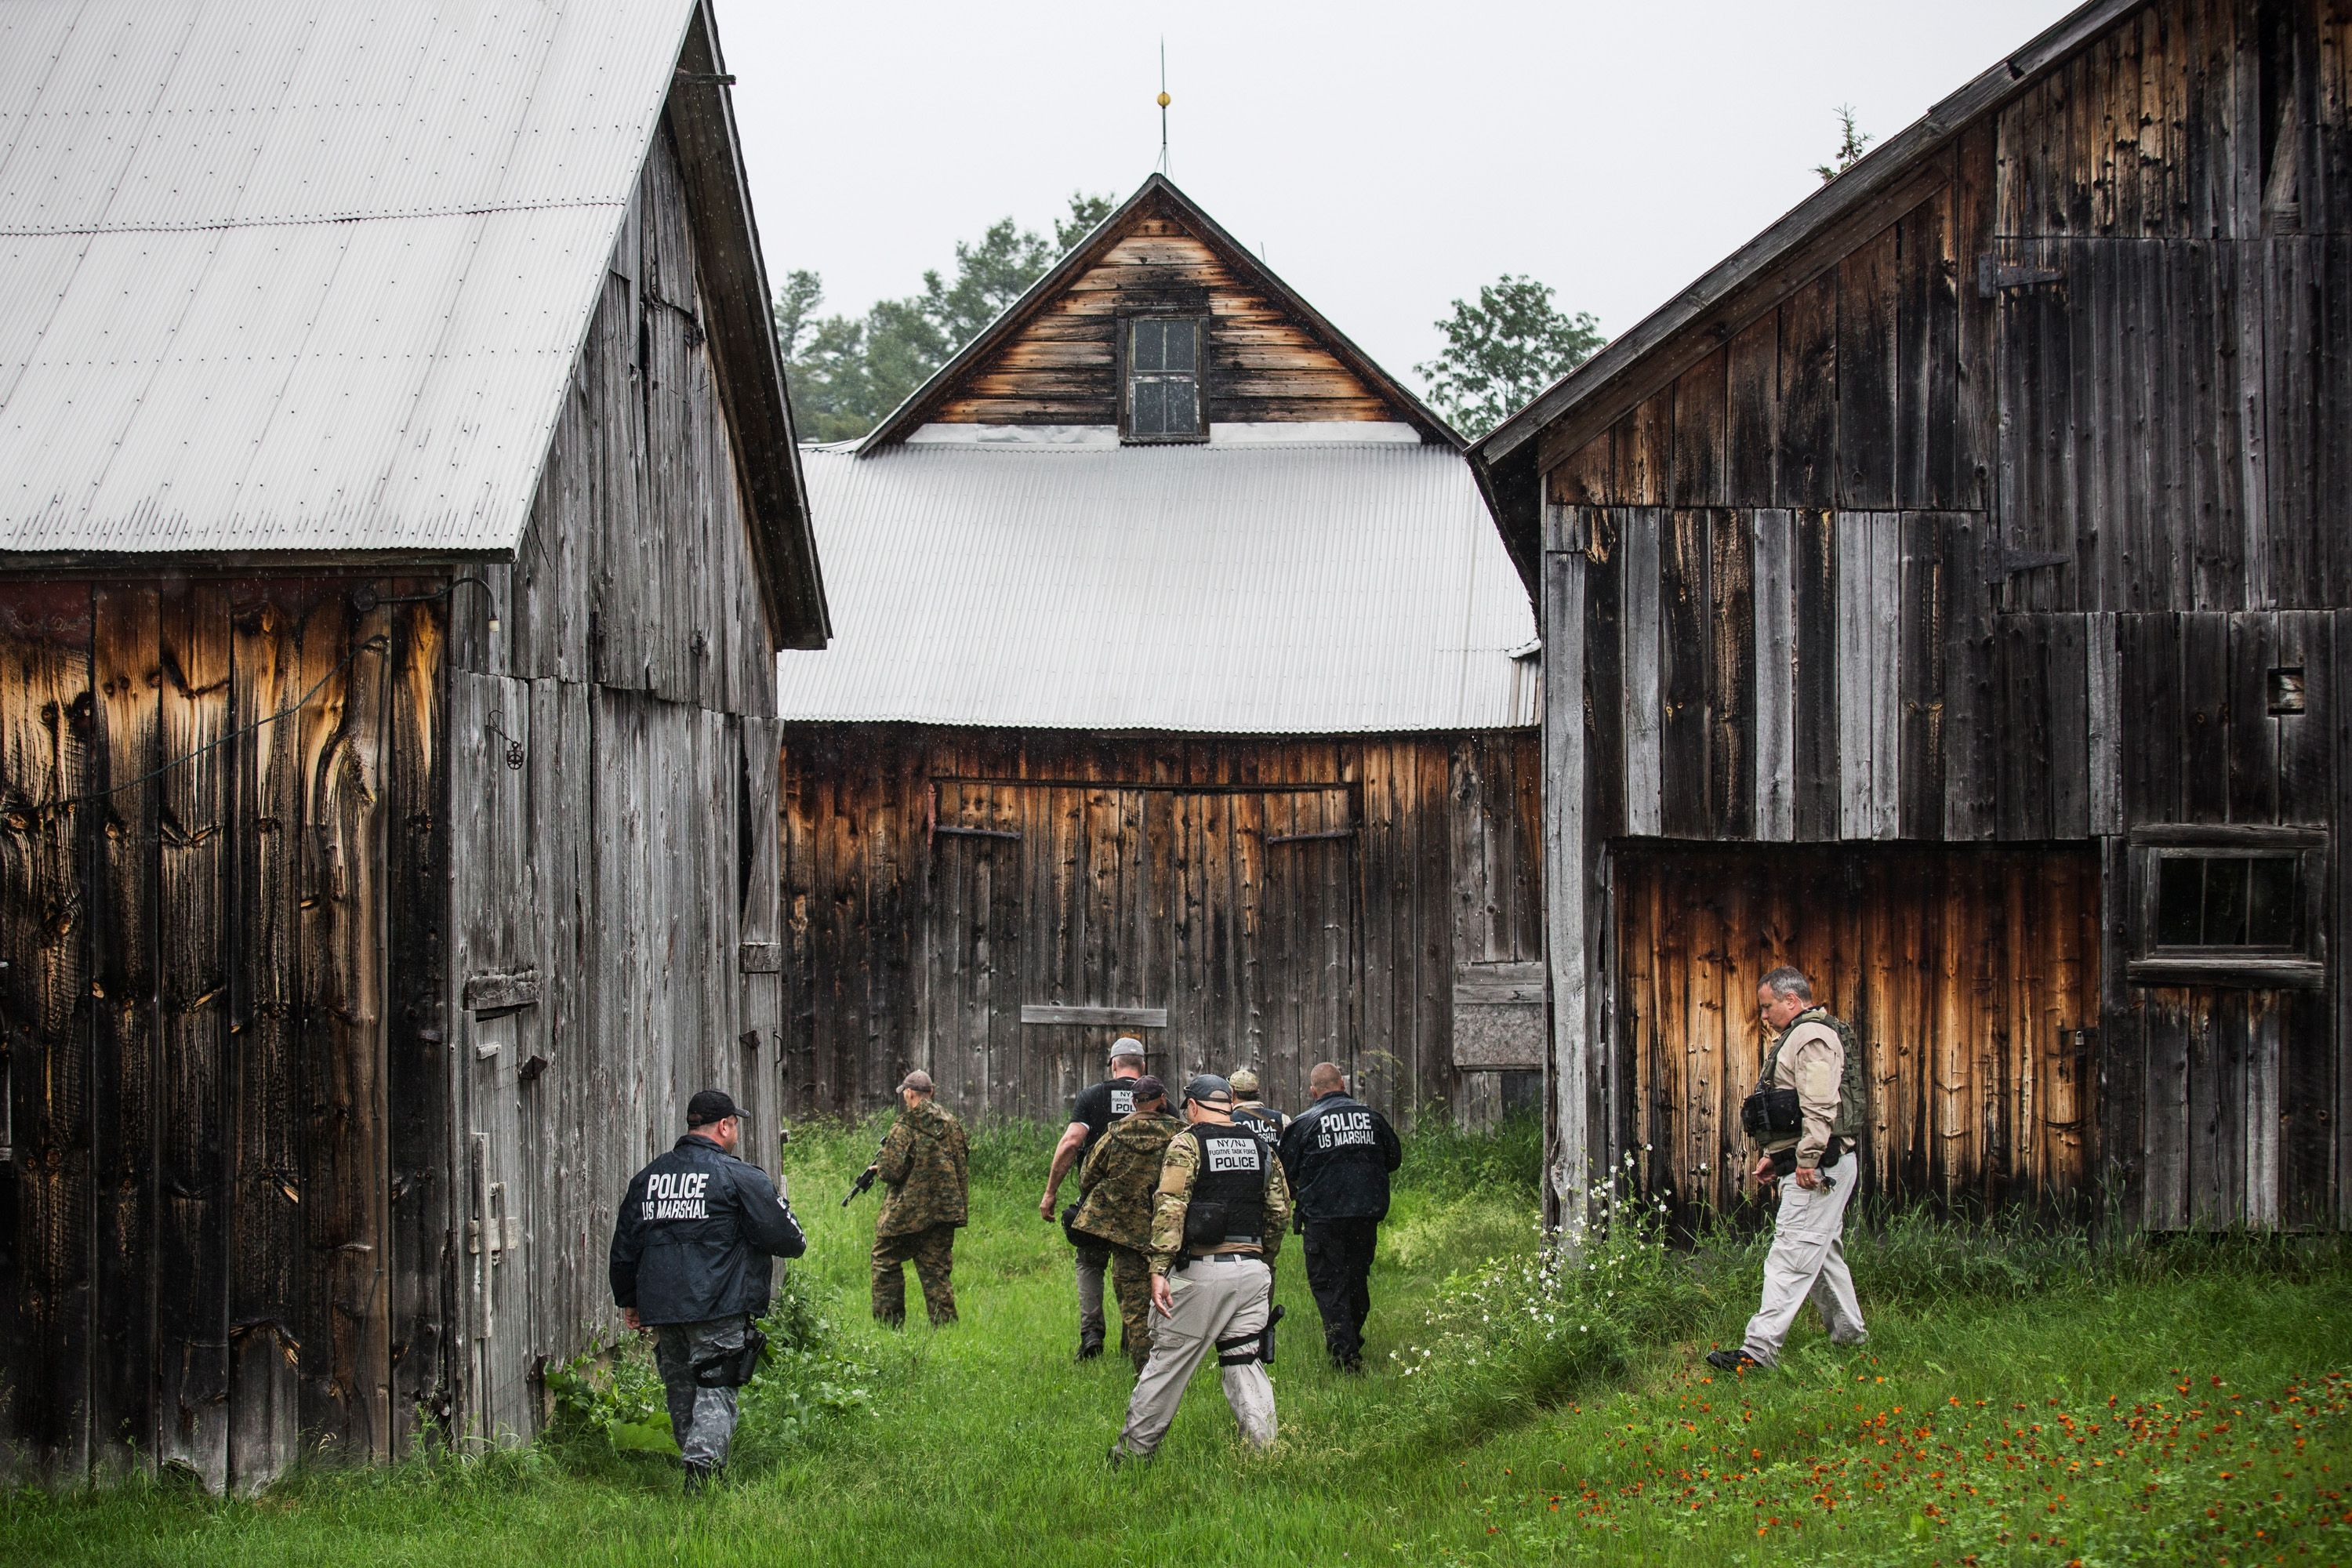 A task force of U.S. Marshalls and police officers go door to door searching for two escaped convicts on June 16, 2015 outside Dannemora, New York.